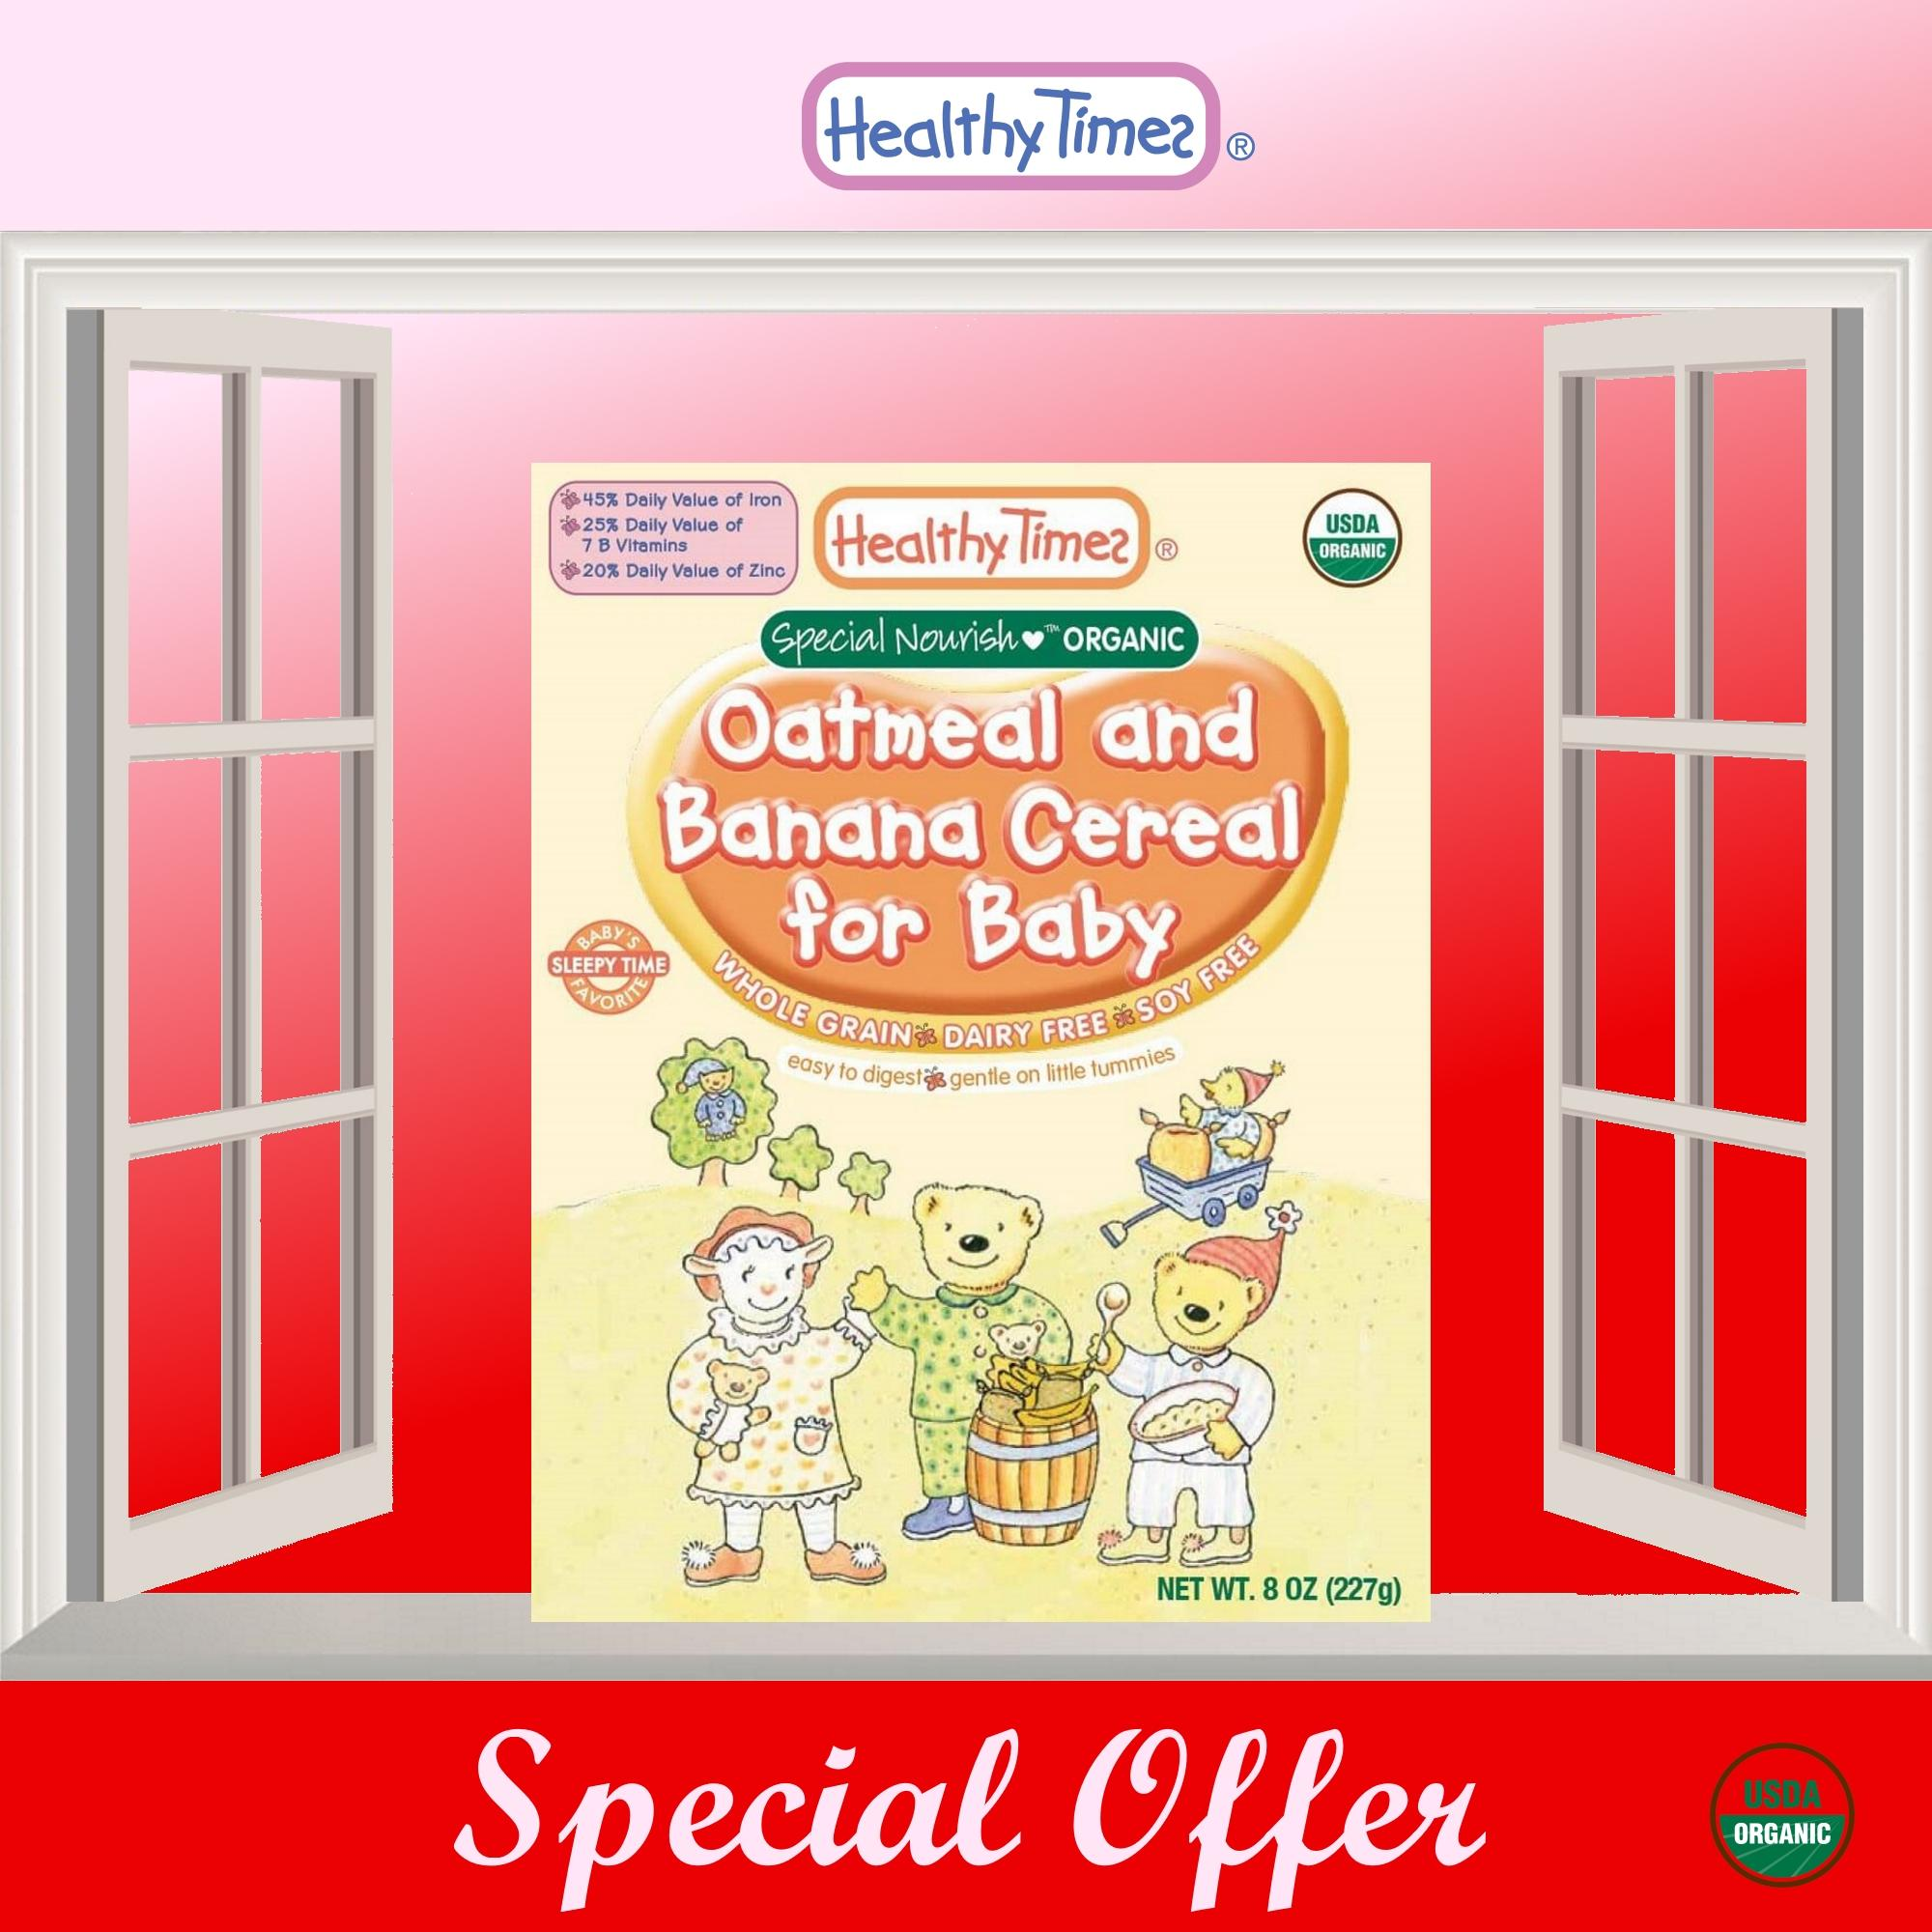 Sale Expiry 04 Nov 2018 Without Outer Box Due To Dented Packaging 2 X Organic Oatmeal And Banana Cereal For Baby 6 Months On Singapore